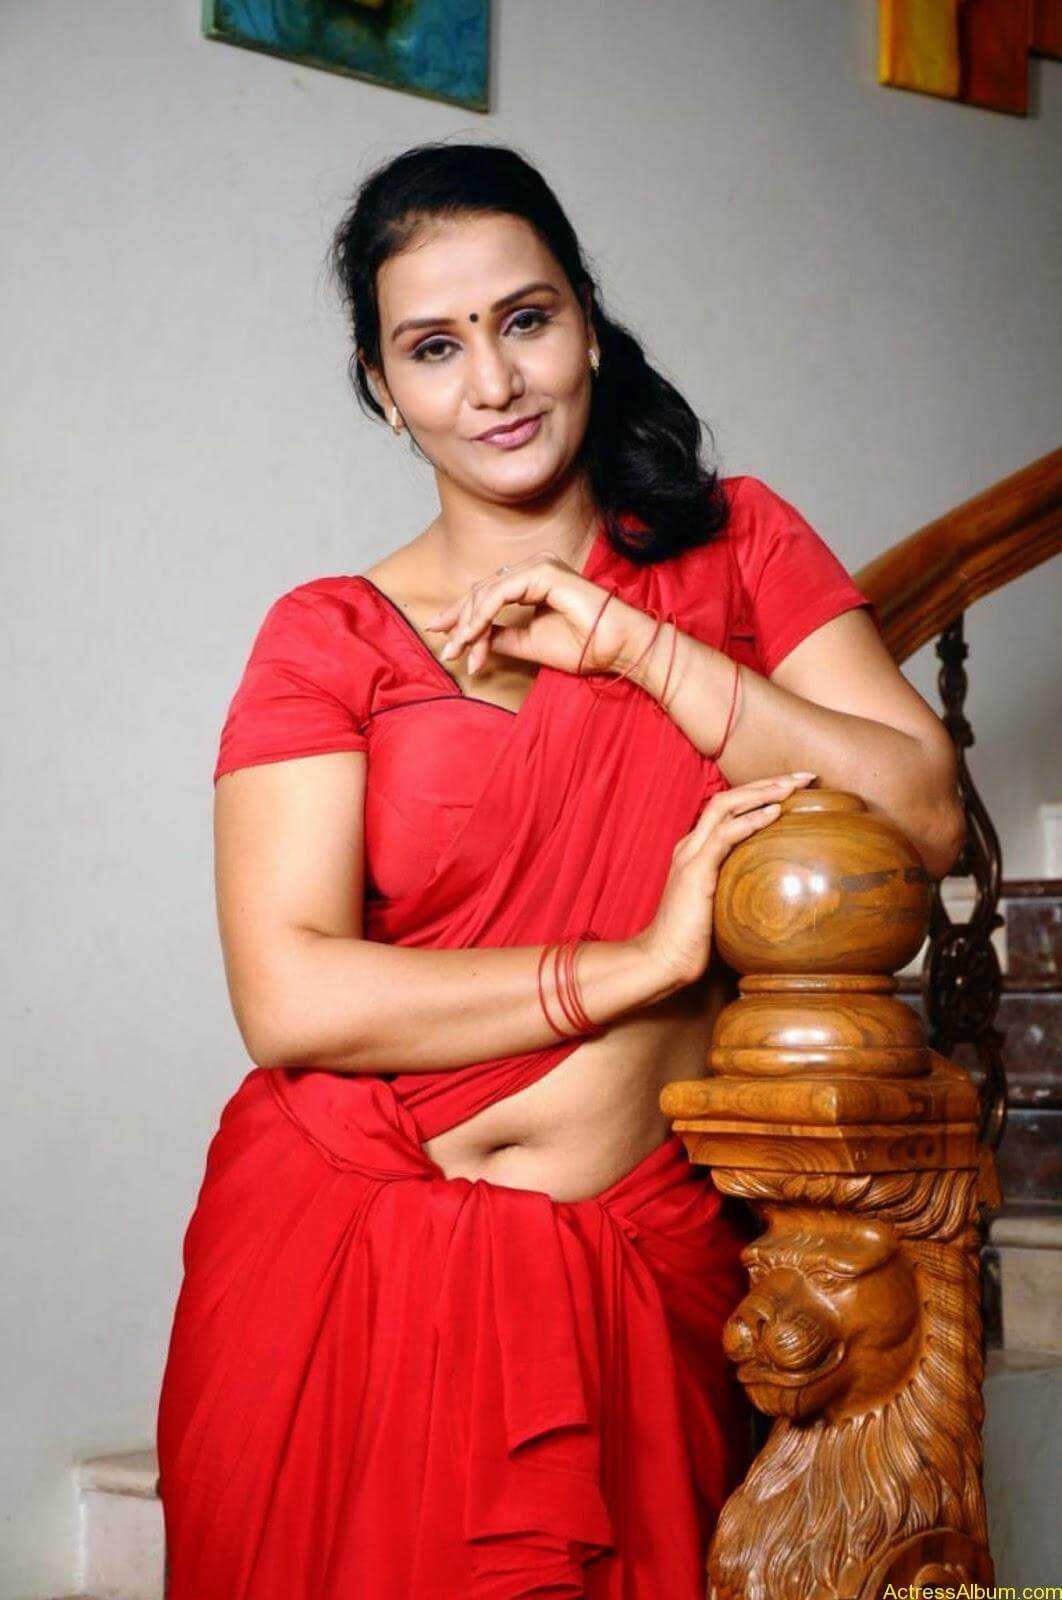 ACTRESS APOORVA VERY HOT IN RED SAREE PHOTO COLLECTION 10